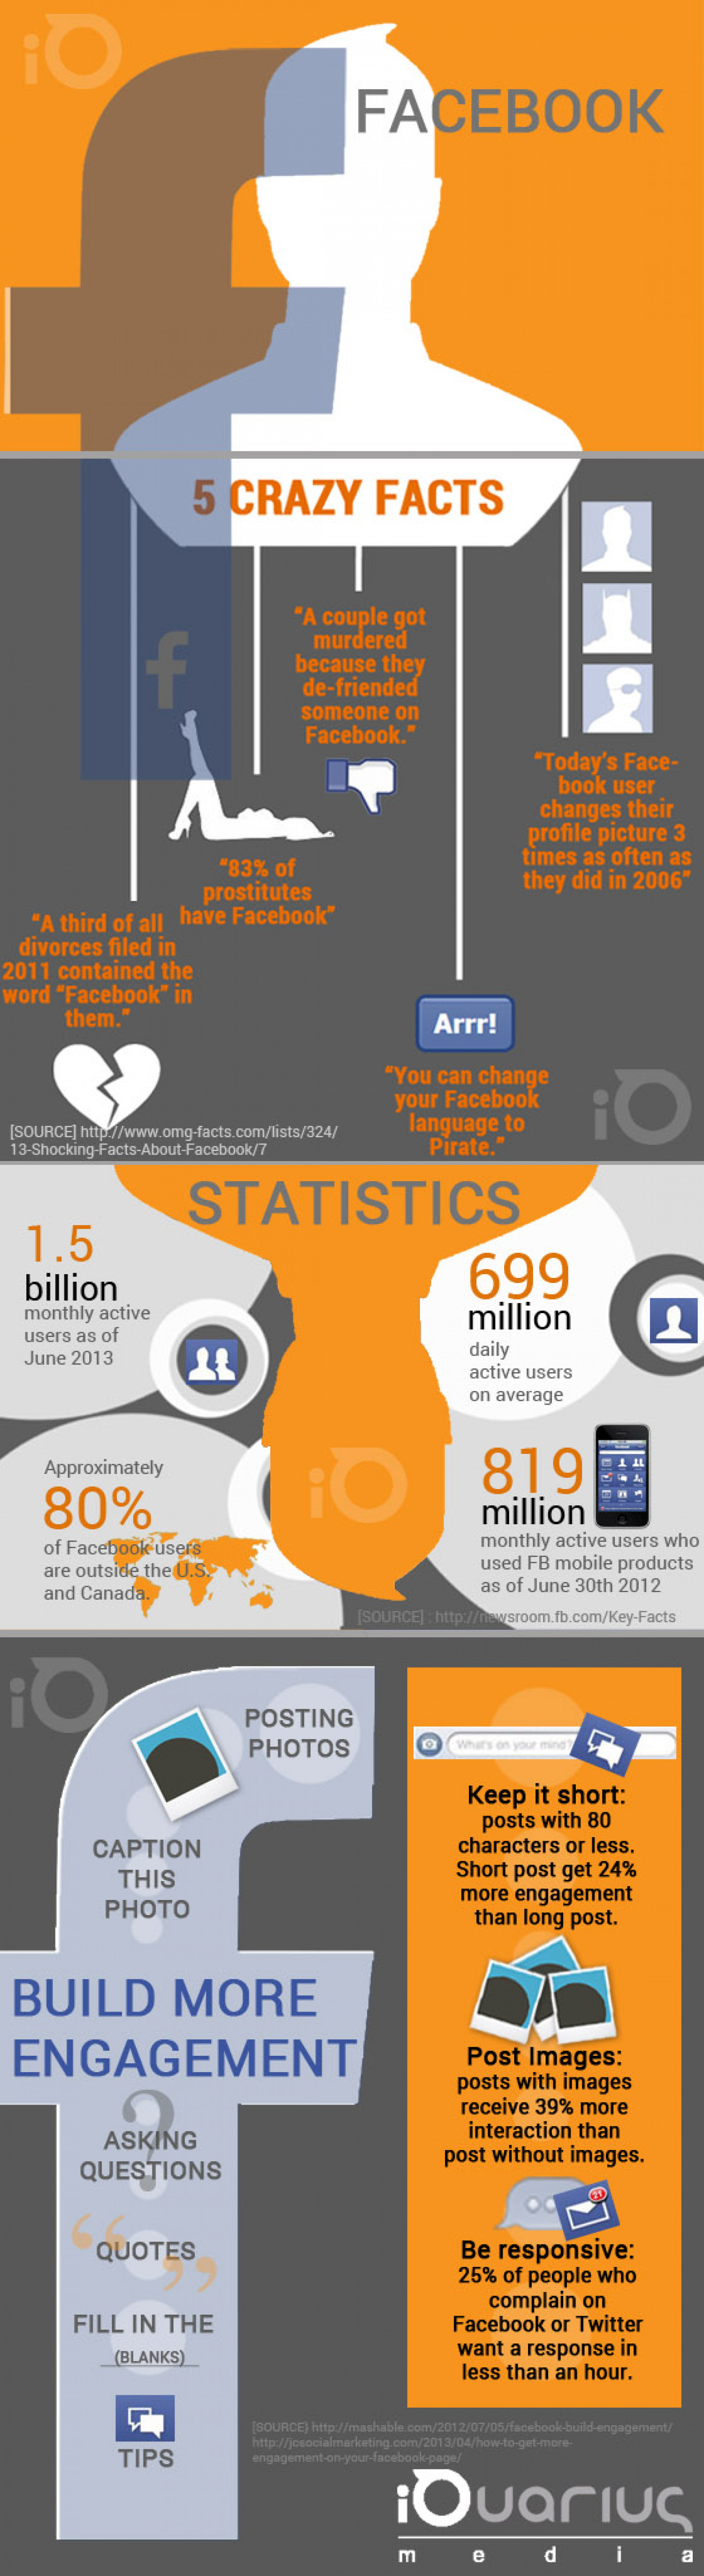 Facebook iQuarius Media  Infographic